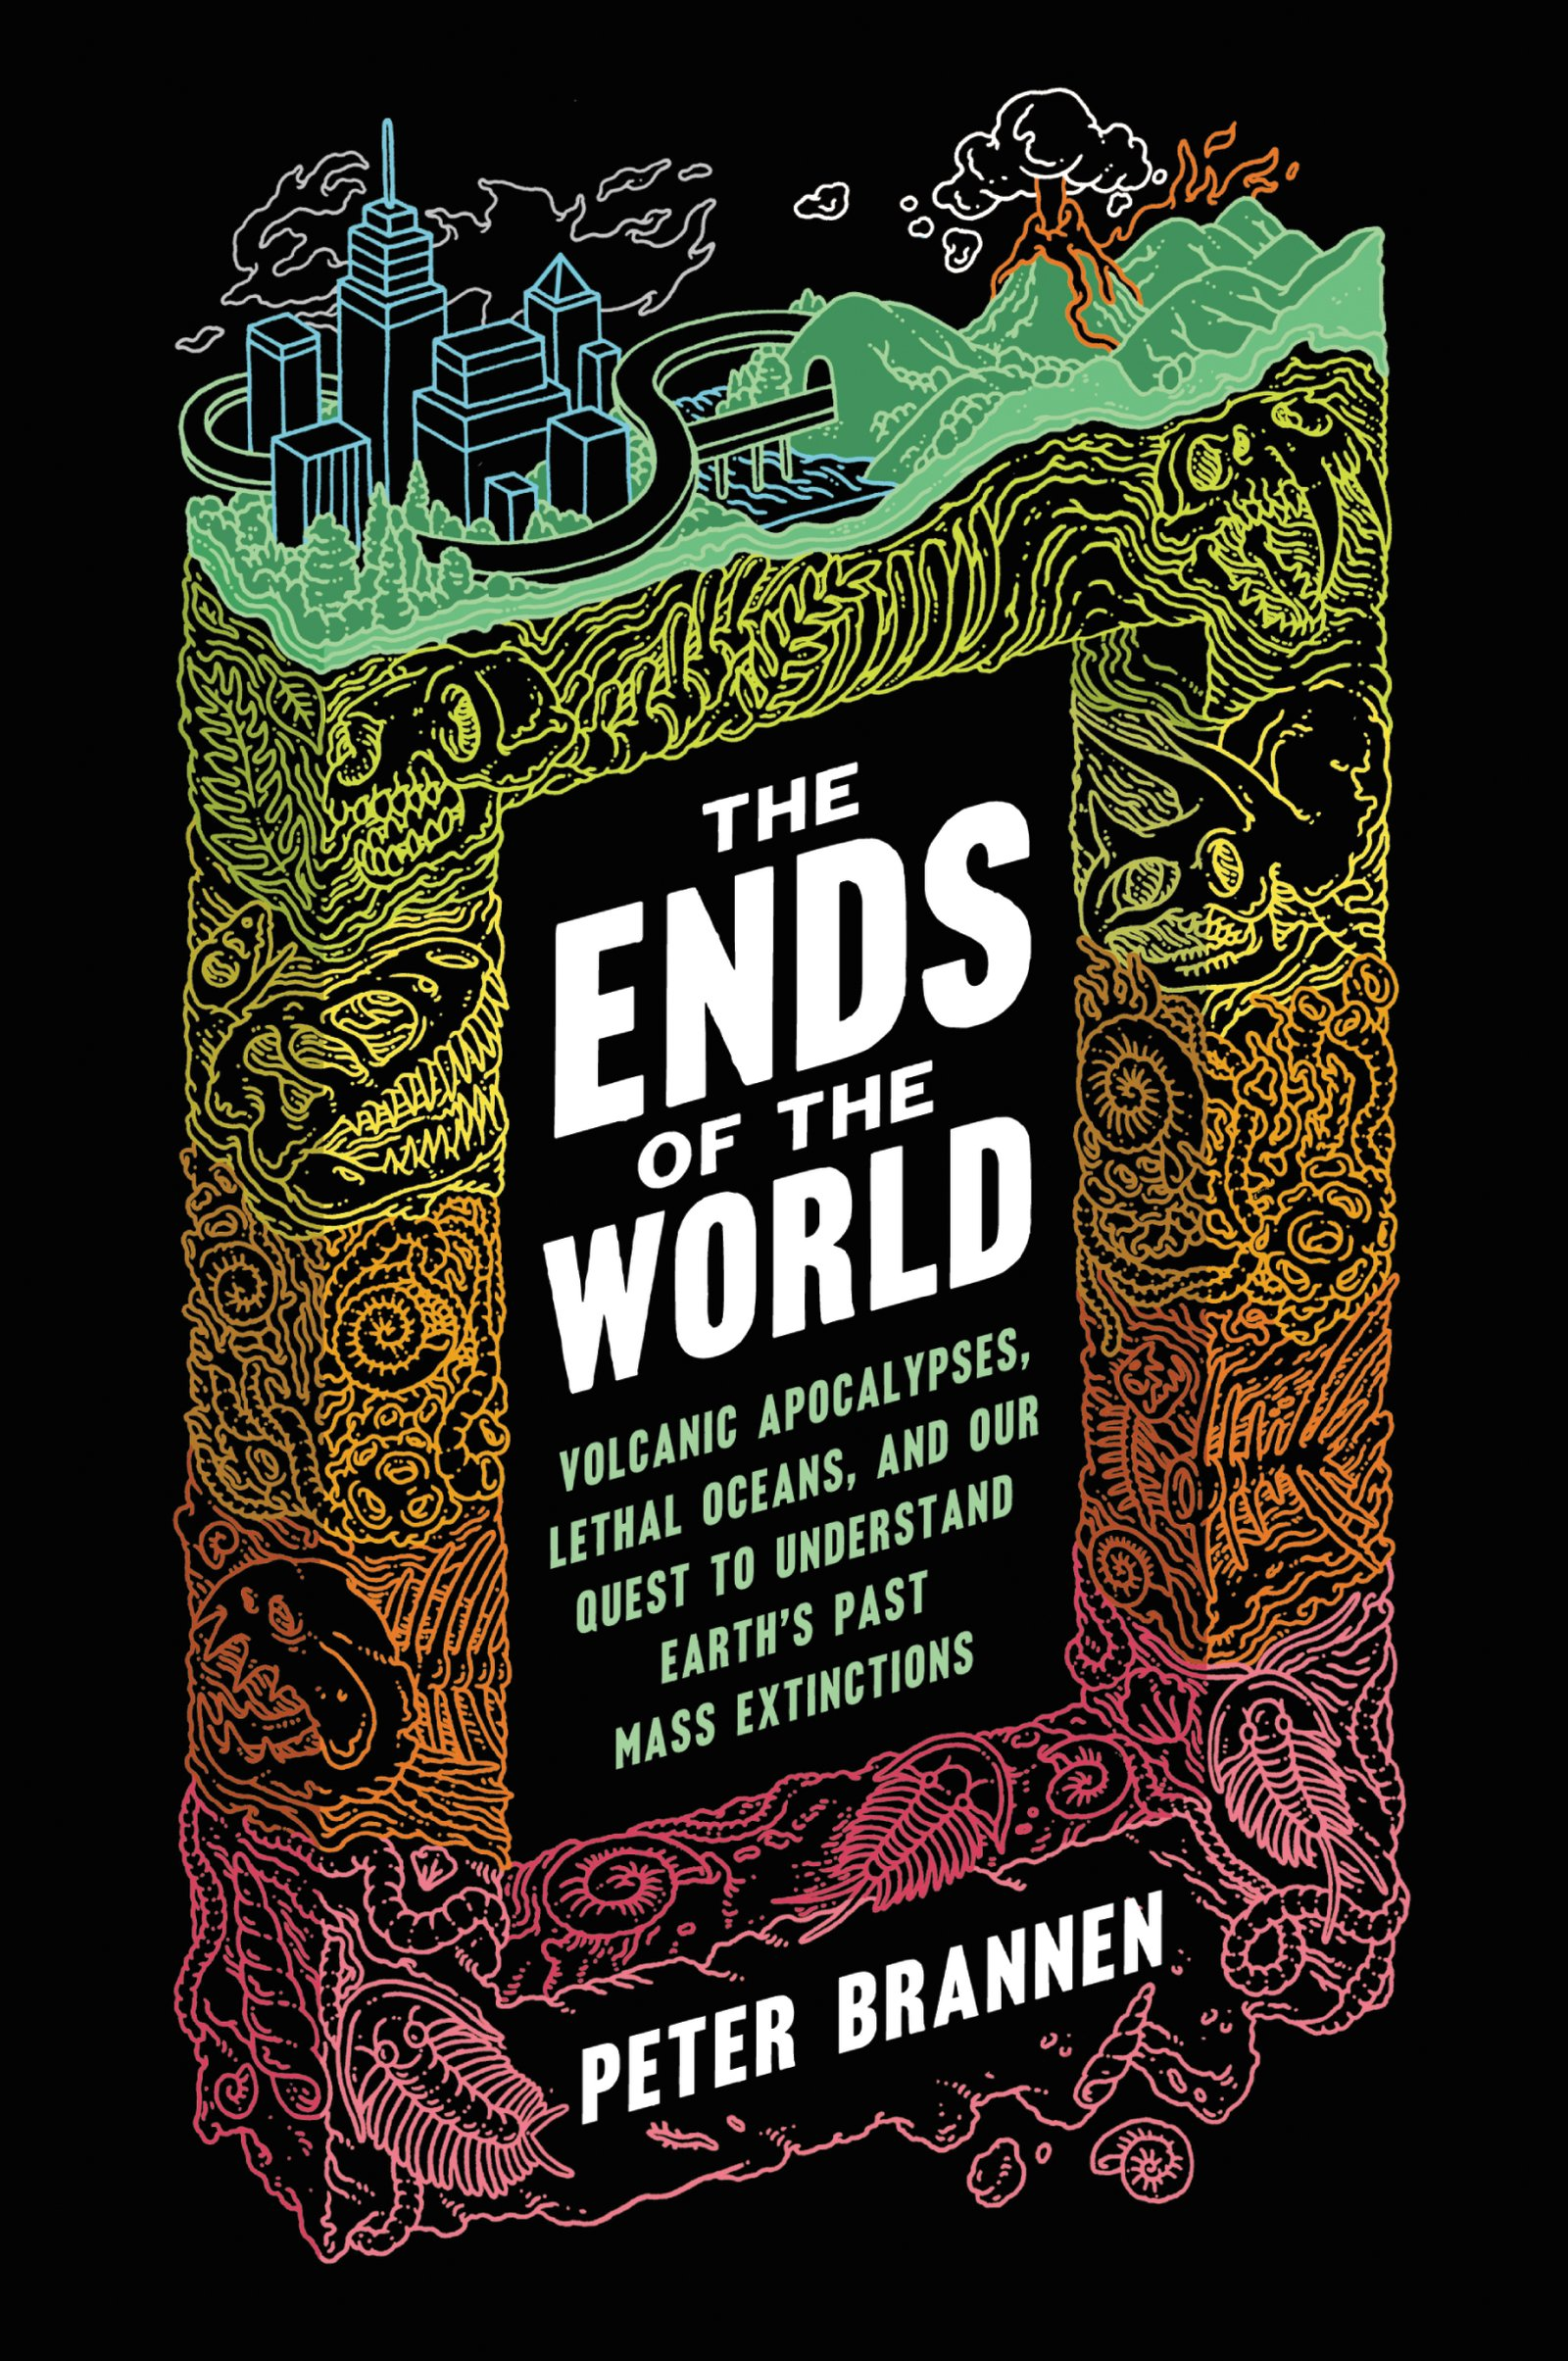 Read Online The Ends of the World: Volcanic Apocalypses, Lethal Oceans, and Our Quest to Understand Earth's Past Mass Extinctions ebook